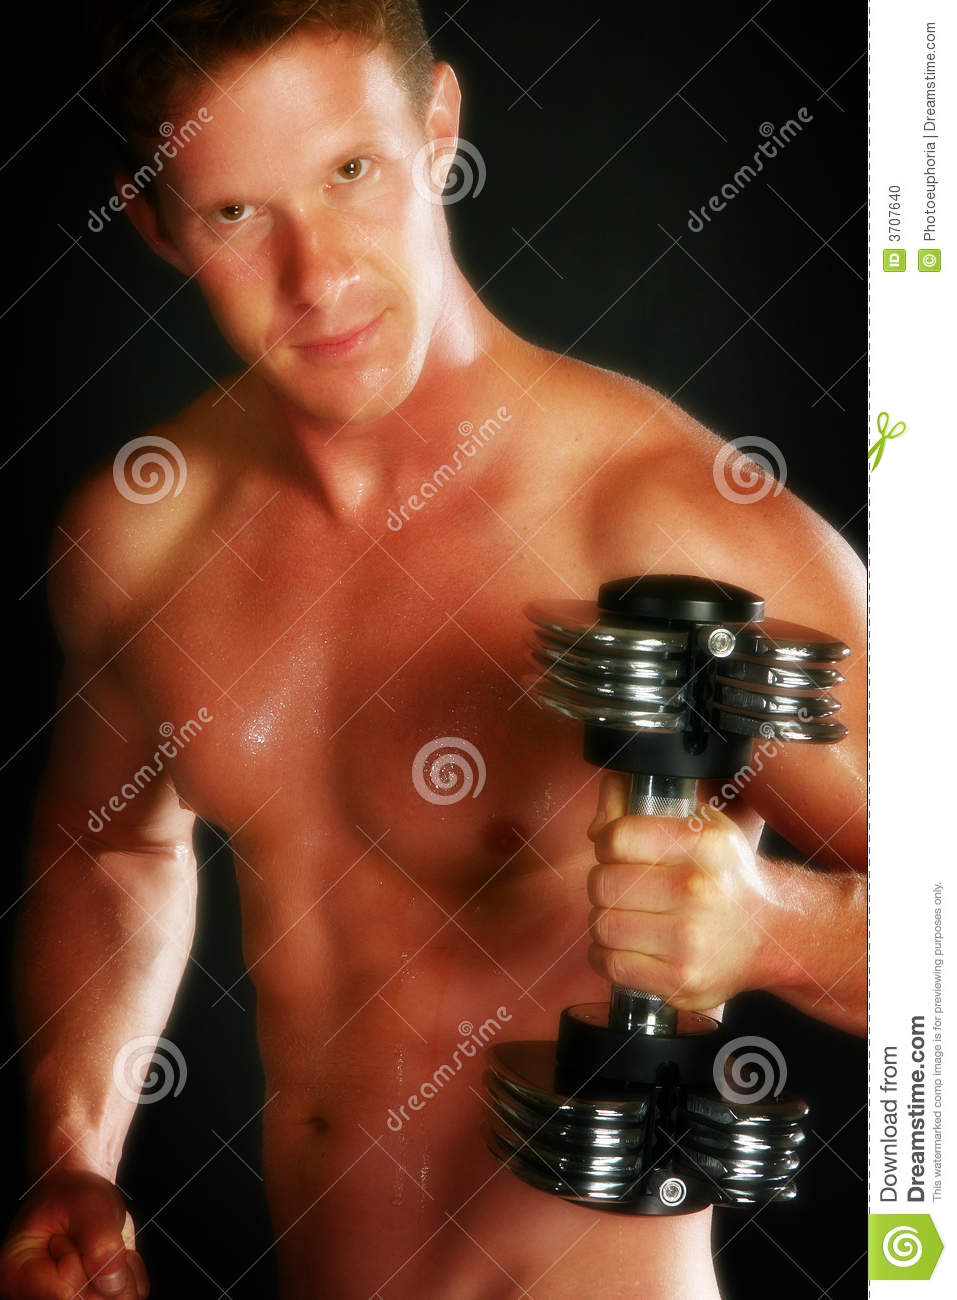 Nude Male Workout